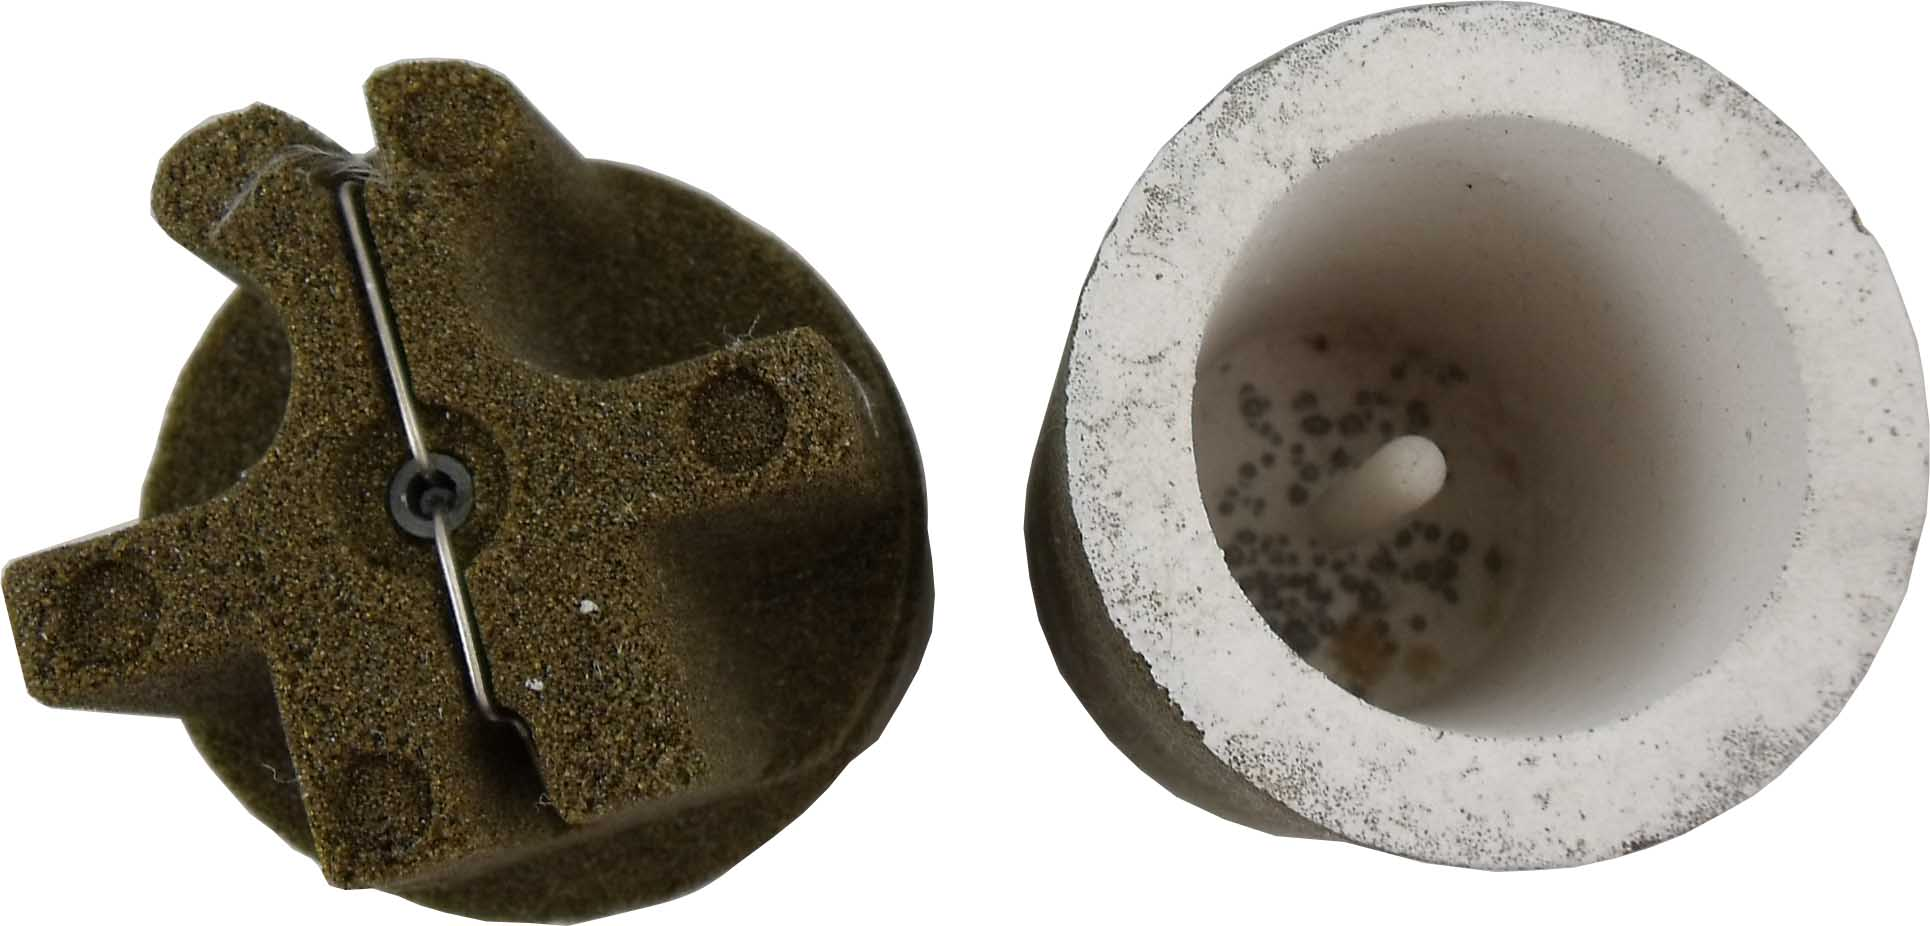 thermal analysis carbon cup for iron casting analysis